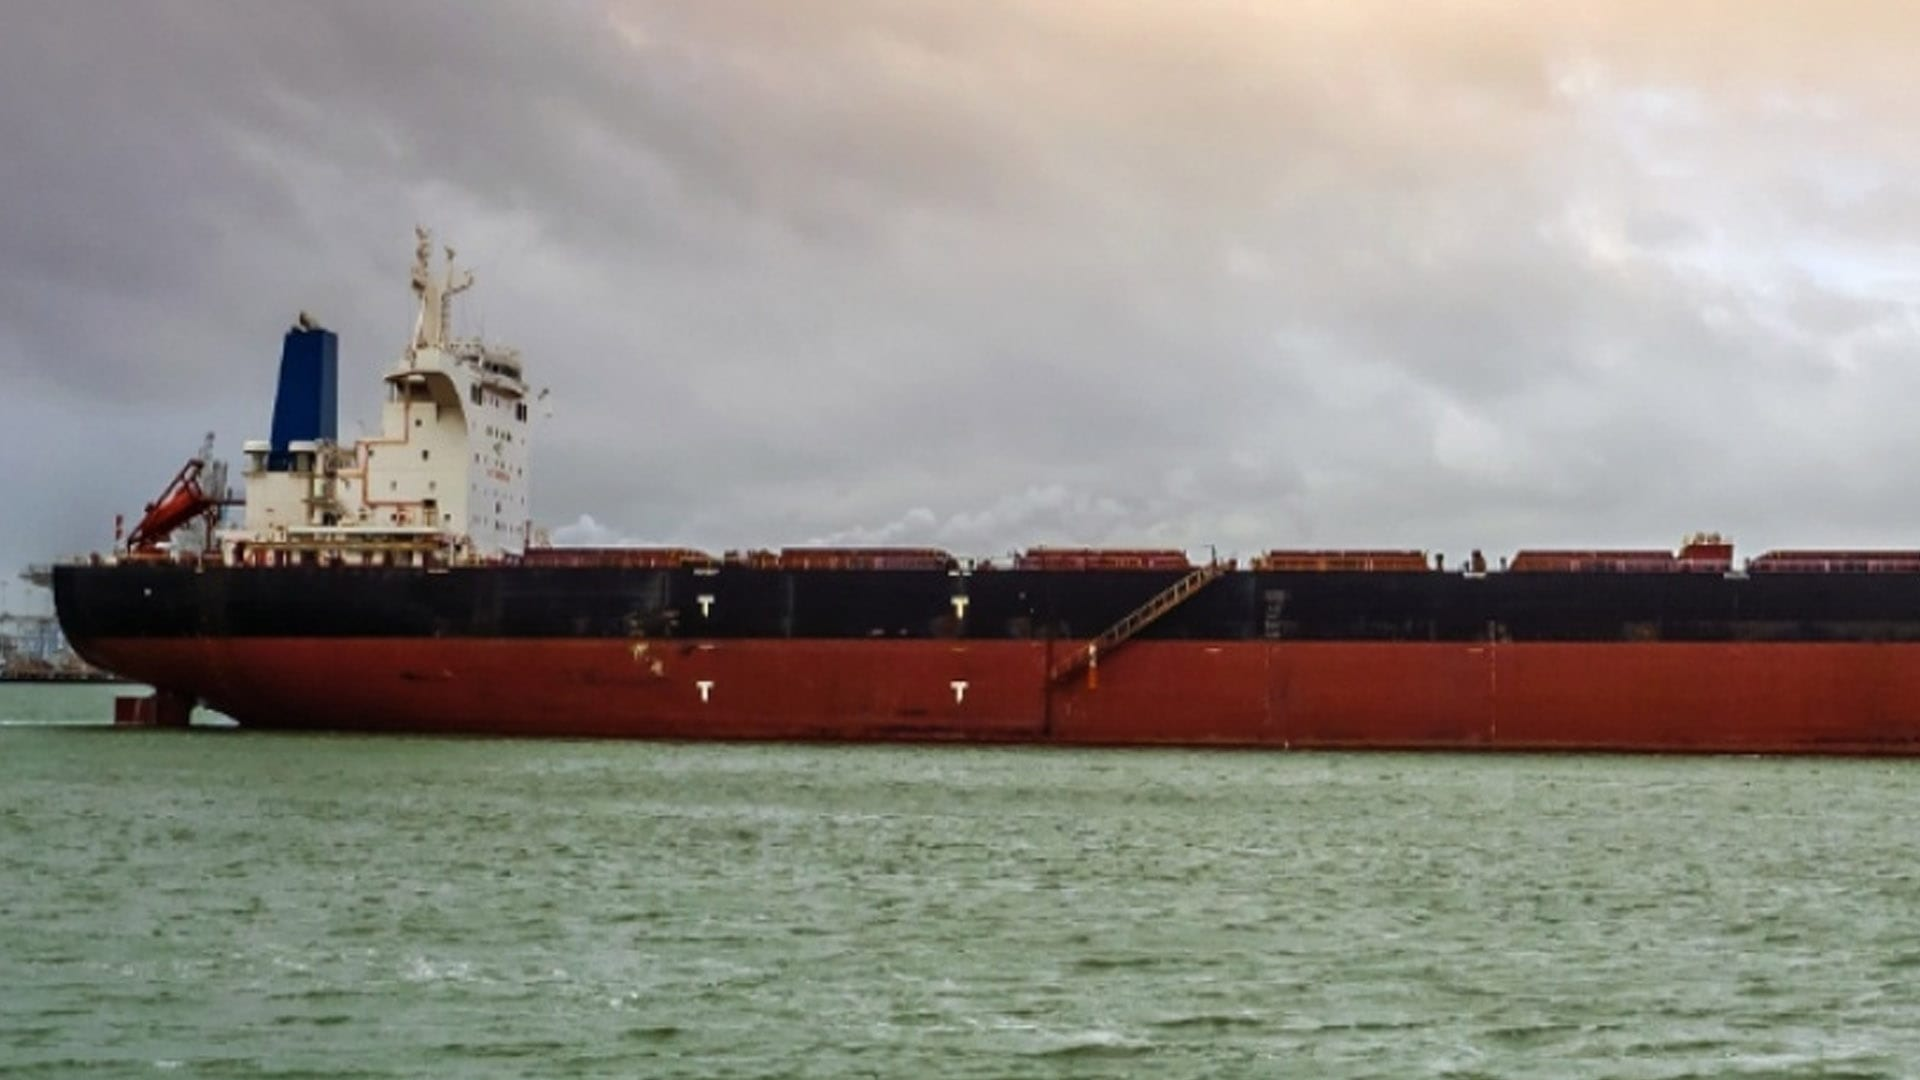 Cargill Extends Charter for Diana's Bulker